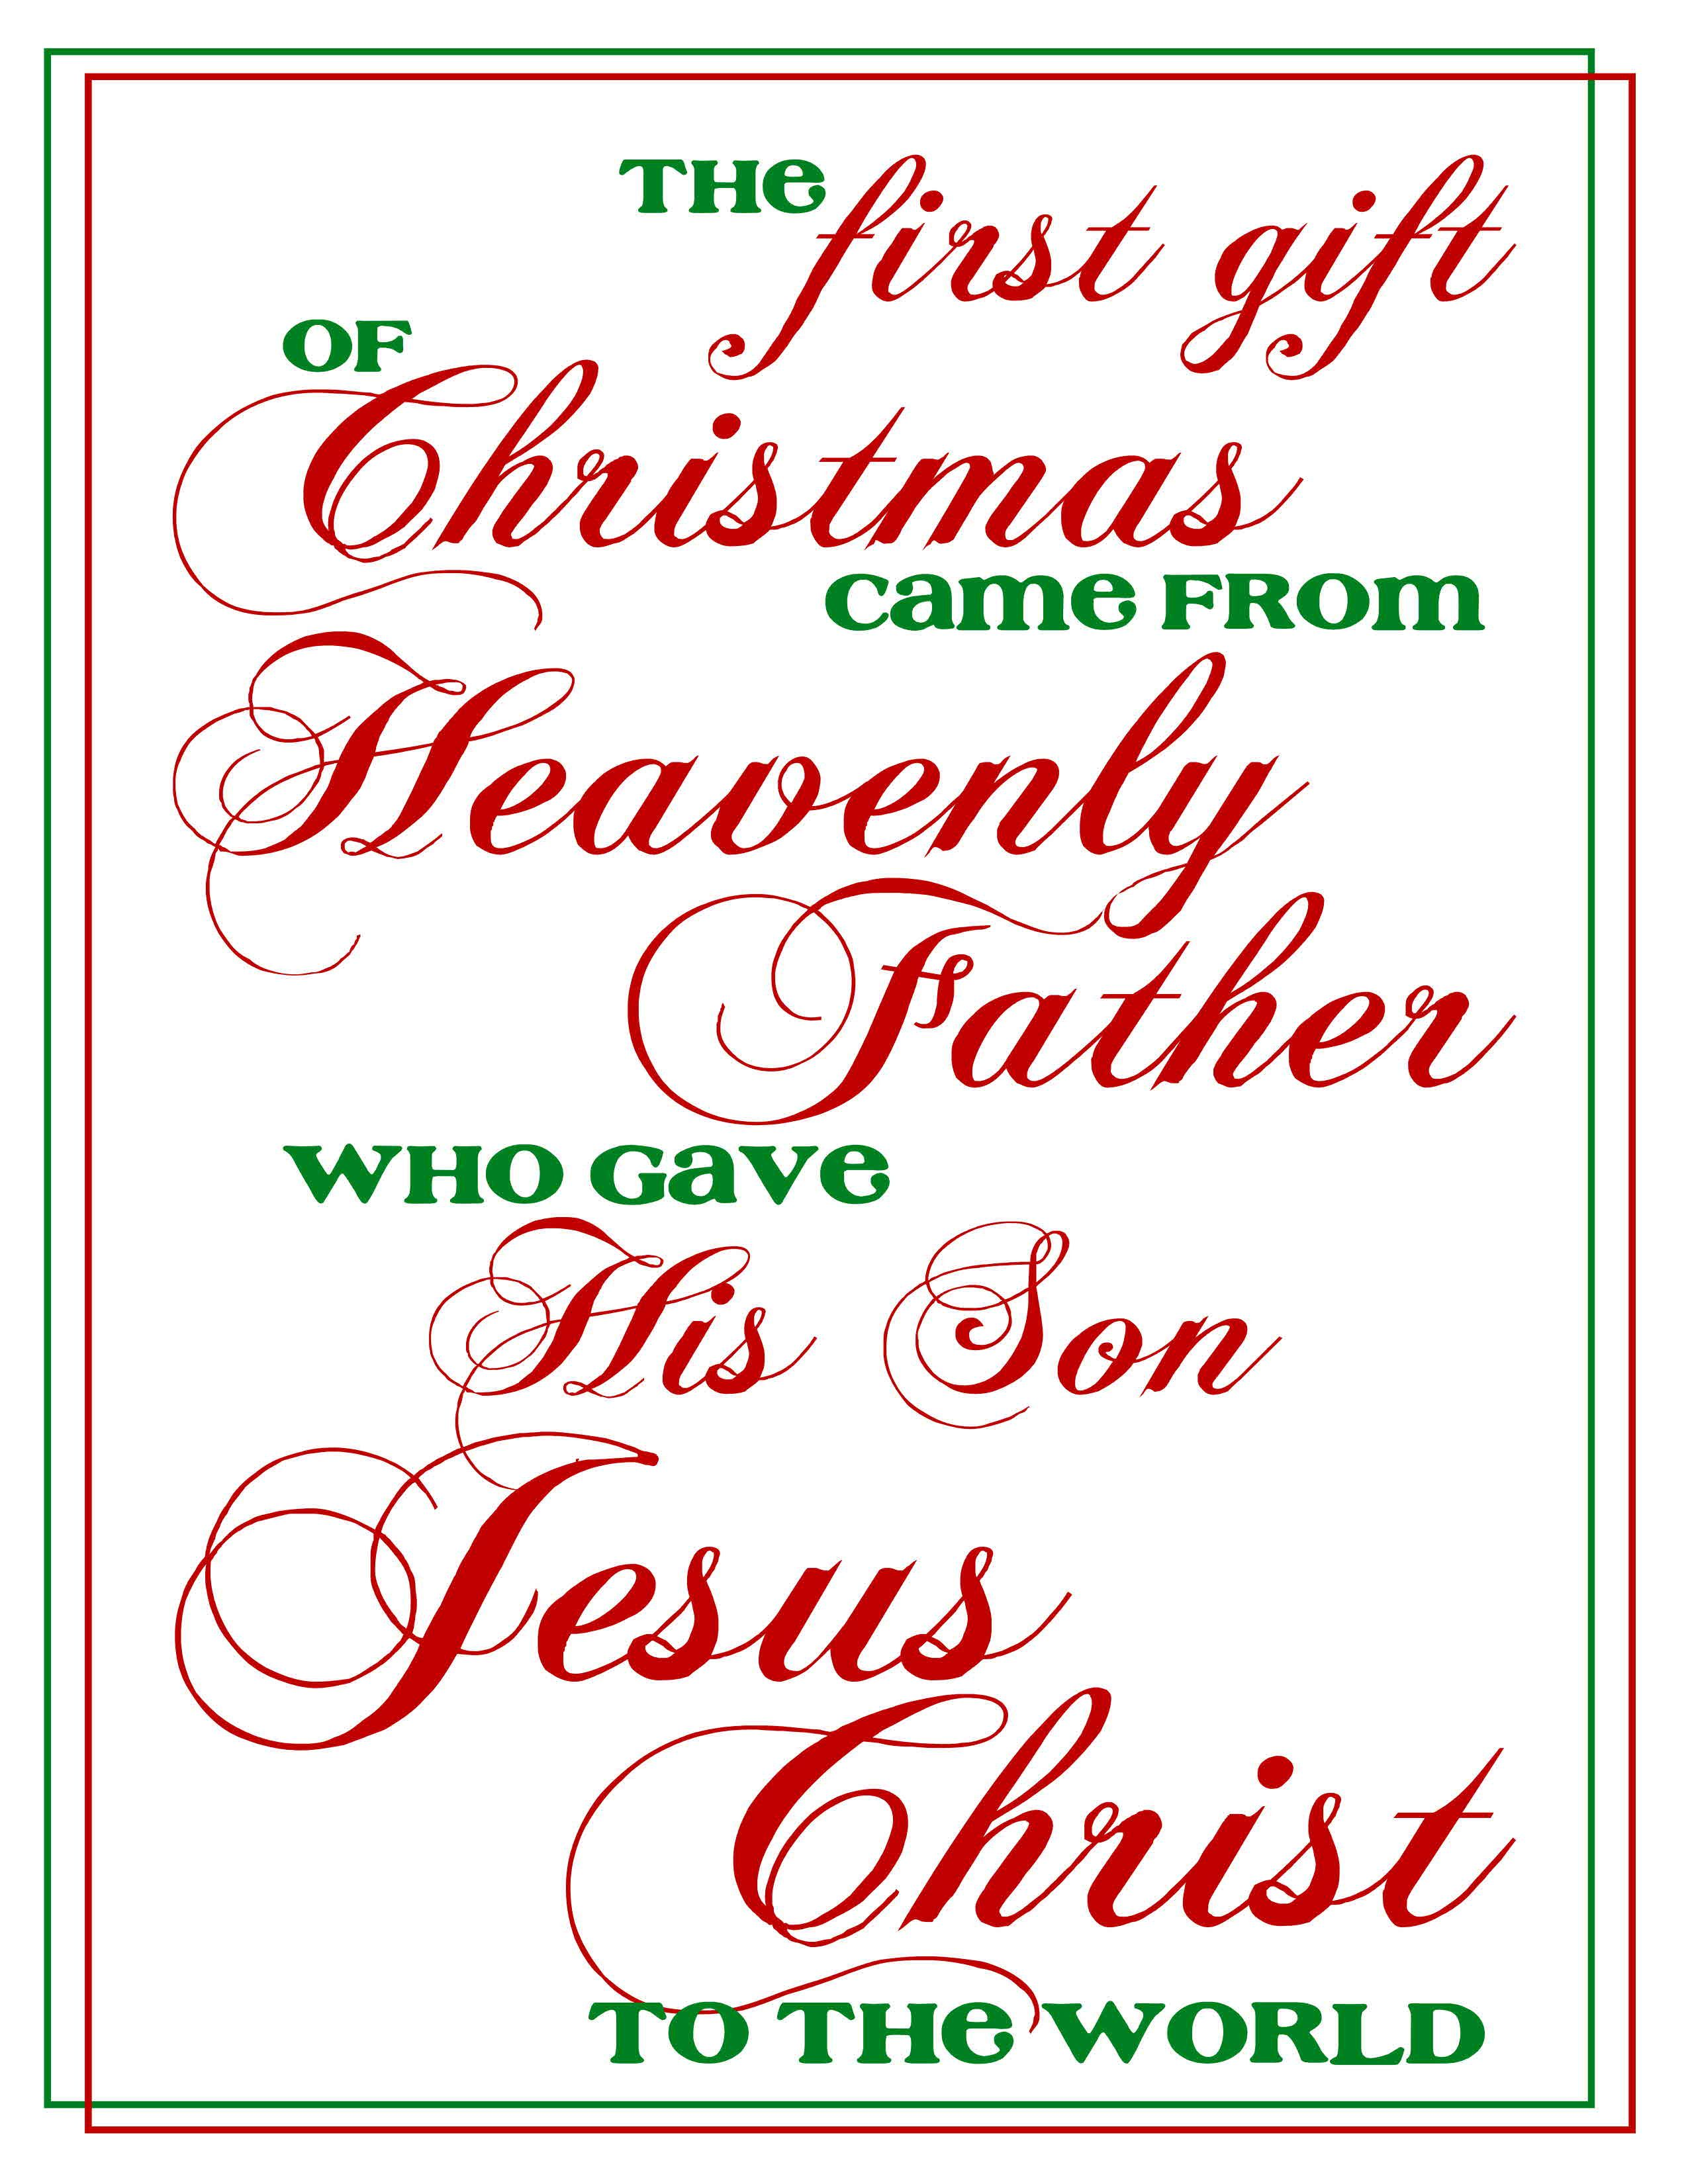 Quote From Lds First Presidency Christmas Email Sharethegift